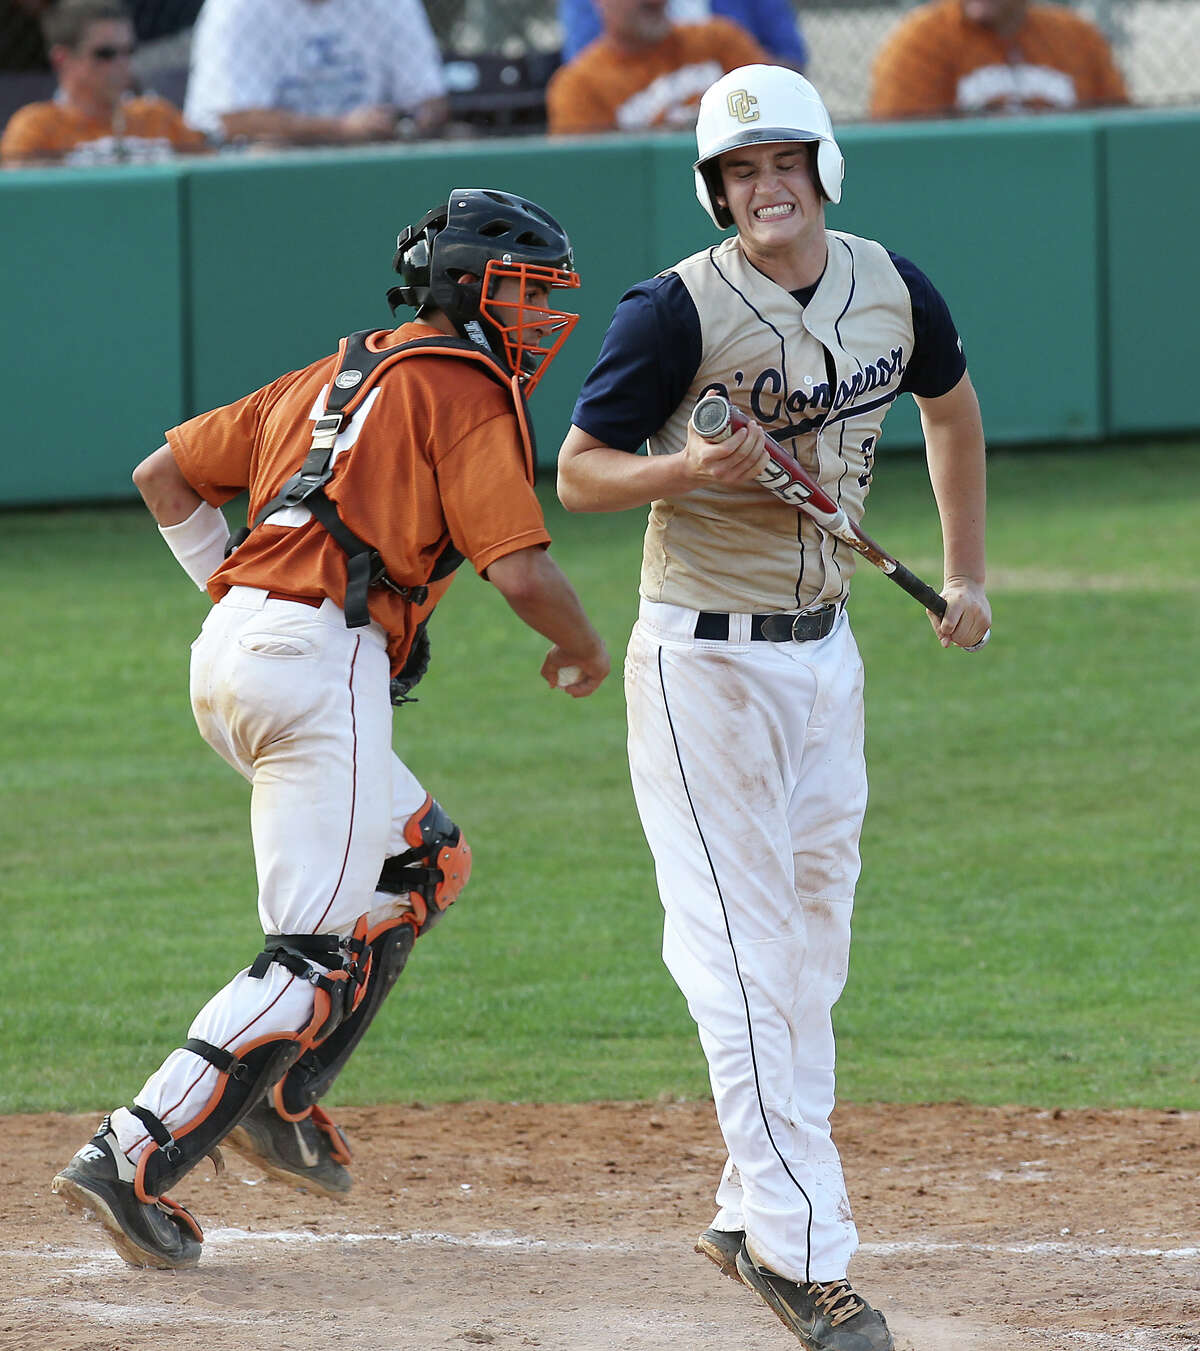 O'Connor's Lance Ellling (cq), right, reacts after striking out in the fifth inning against Madison in game 1 of a best of three series of the second round of Class 5A playoffs at NEISD on Friday, May 11, 2012. Madison defeated O'Connor, 7-2. Kin Man Hui/Express-News.